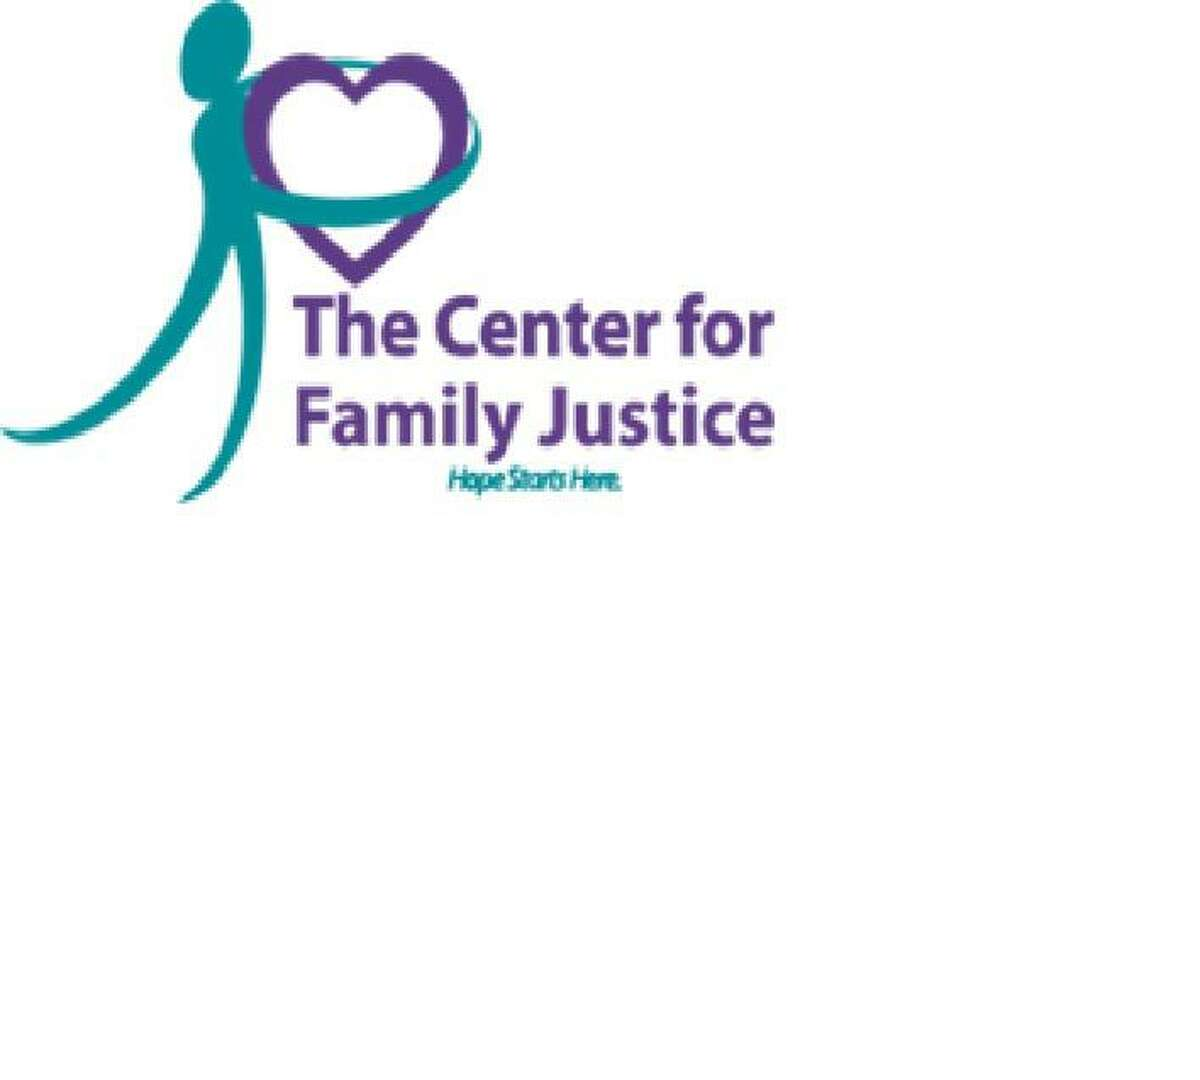 The Center for Family Justice in Bridgeport, which offers shelter and other services to those living with domestic and sexual abuse, is hosting its annual Domestic Violence Awareness Month vigil virtually on Oct. 22, 2020.